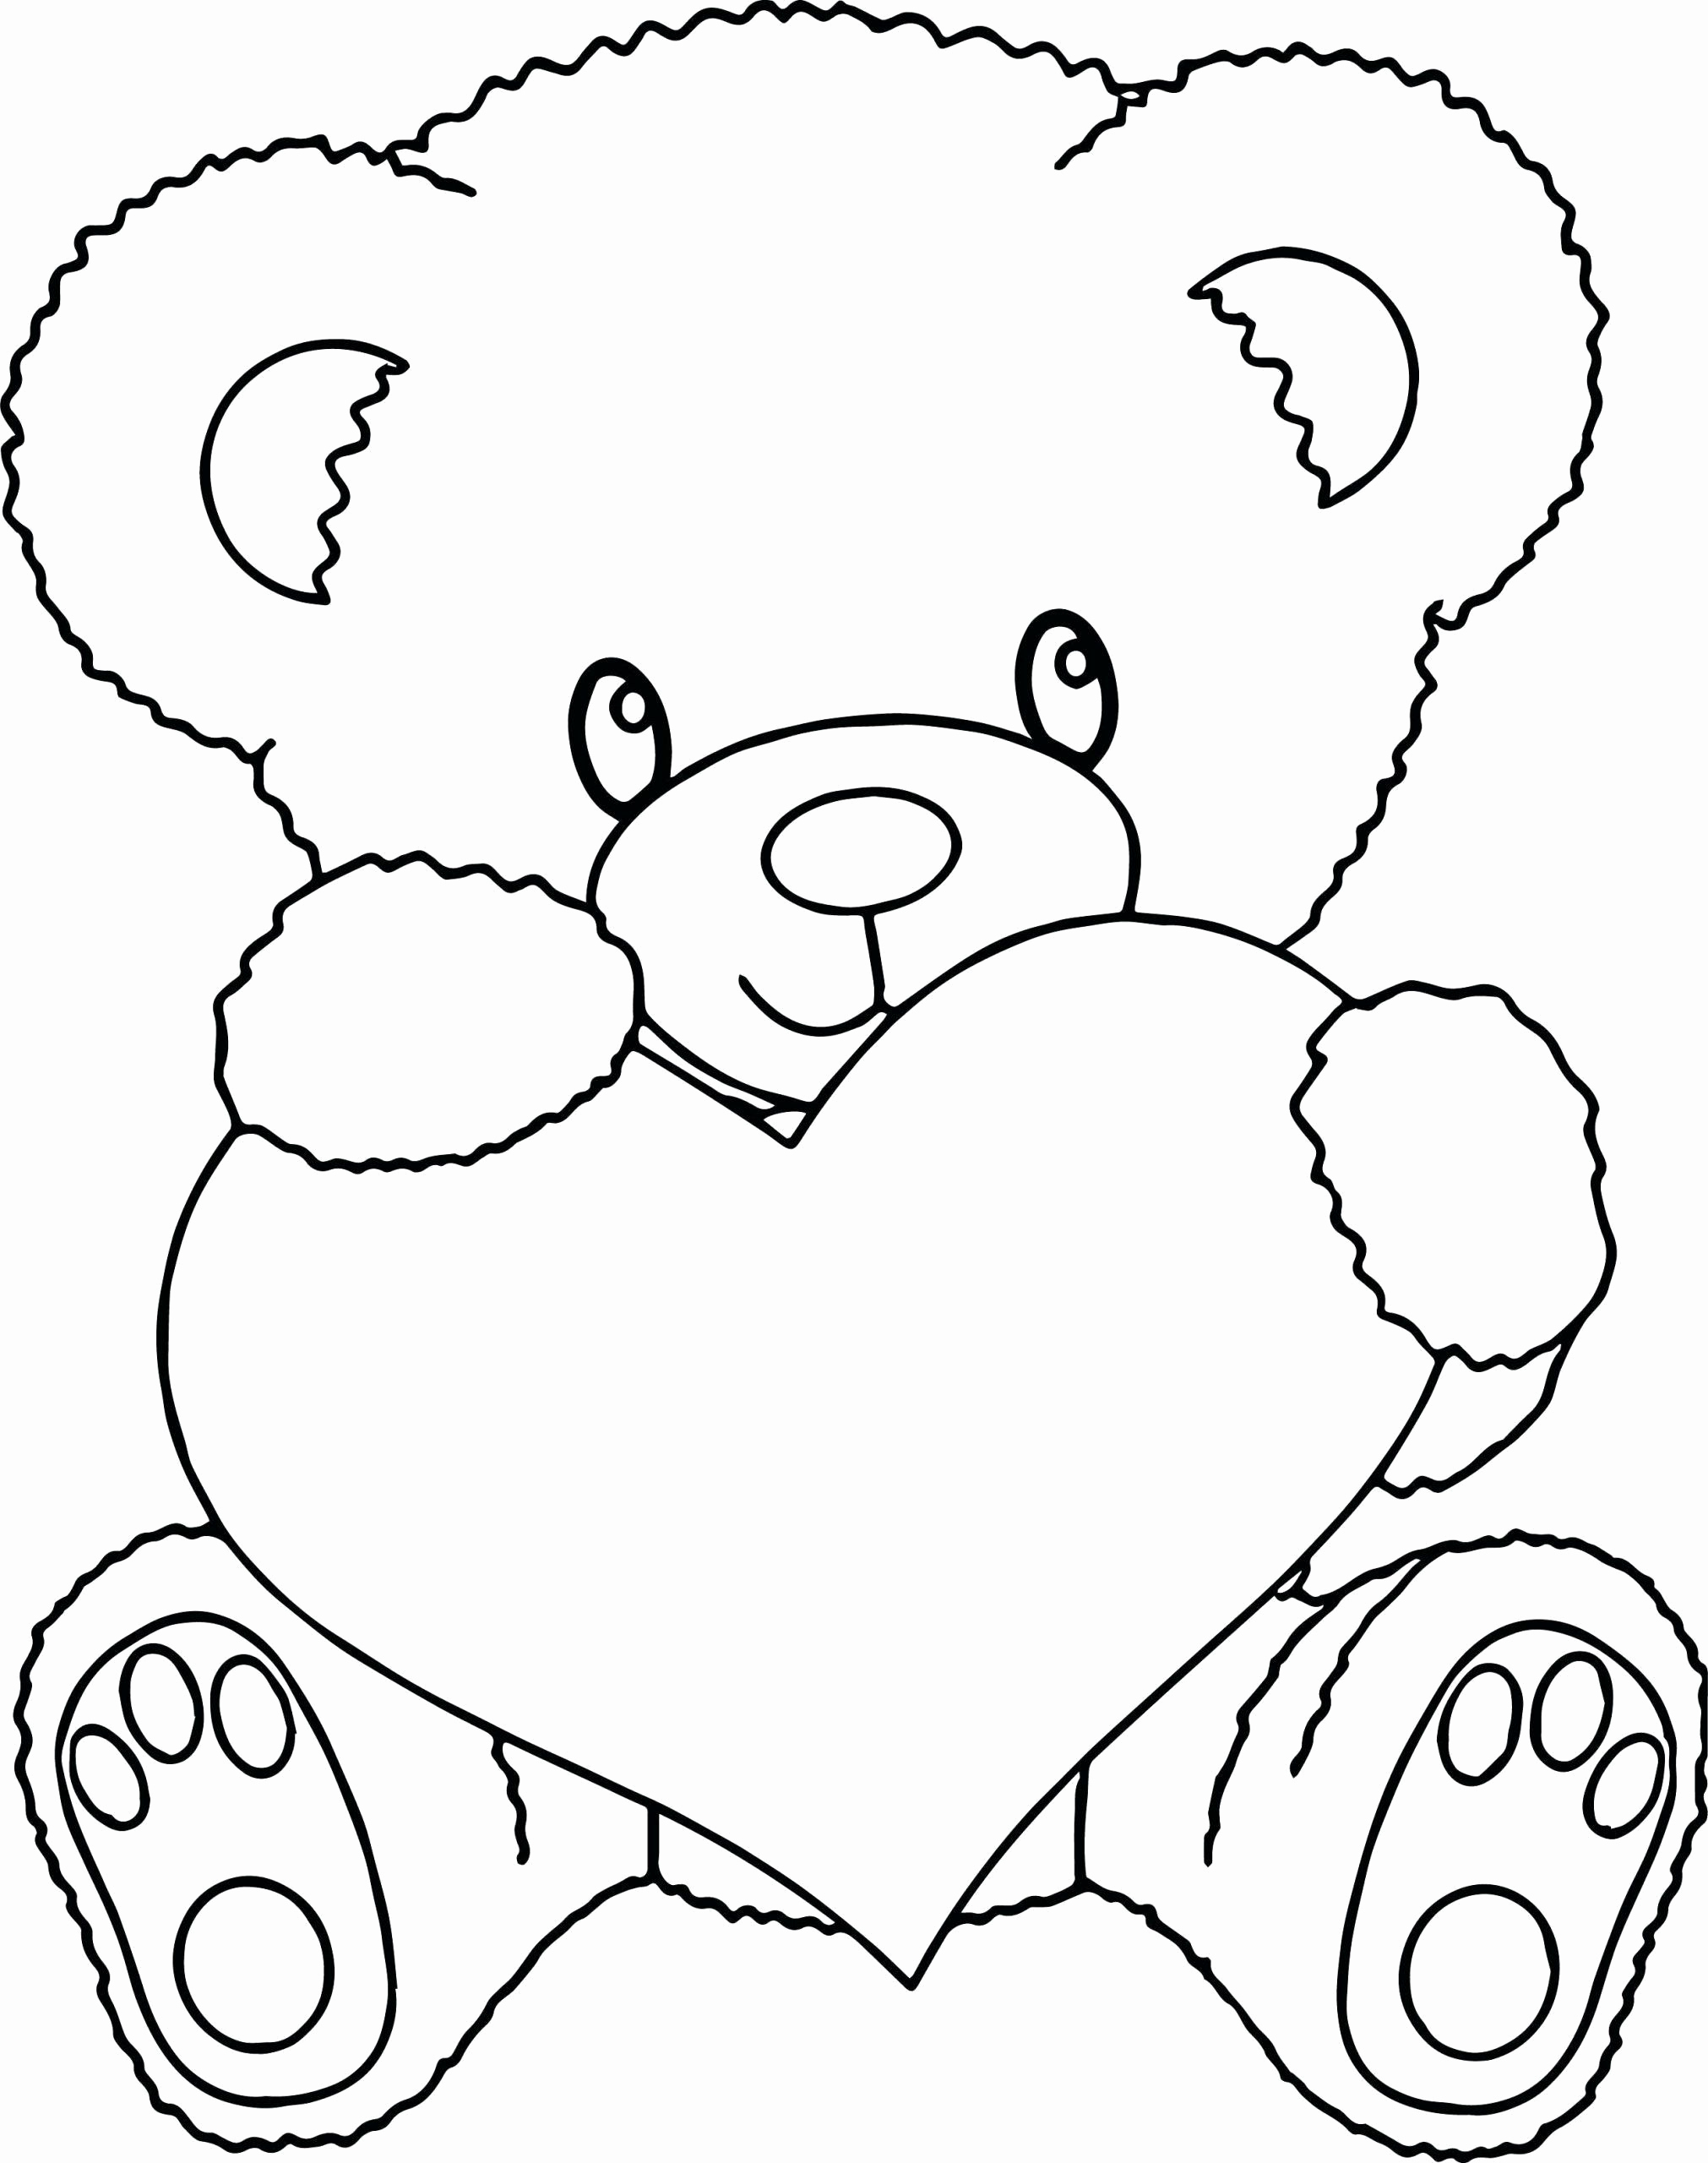 Heart Coloring Worksheet Inspirational Heart Coloring Worksheet Coloring Pages Coloring